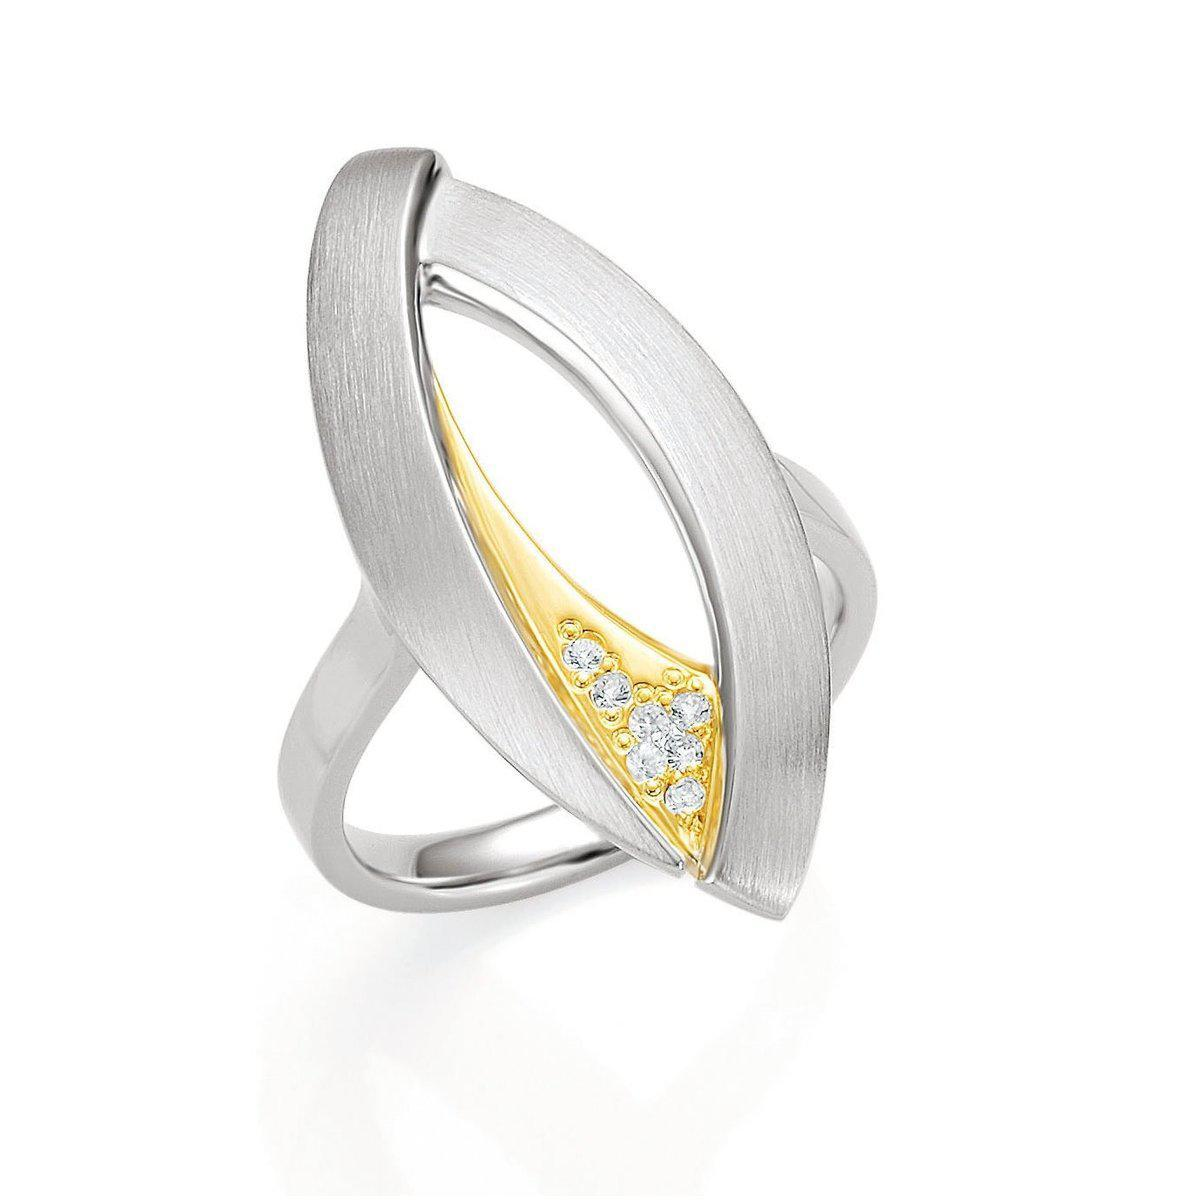 Yellow Gold Plated Sterling Silver White Sapphire Ring - 42/03191-Breuning-Renee Taylor Gallery